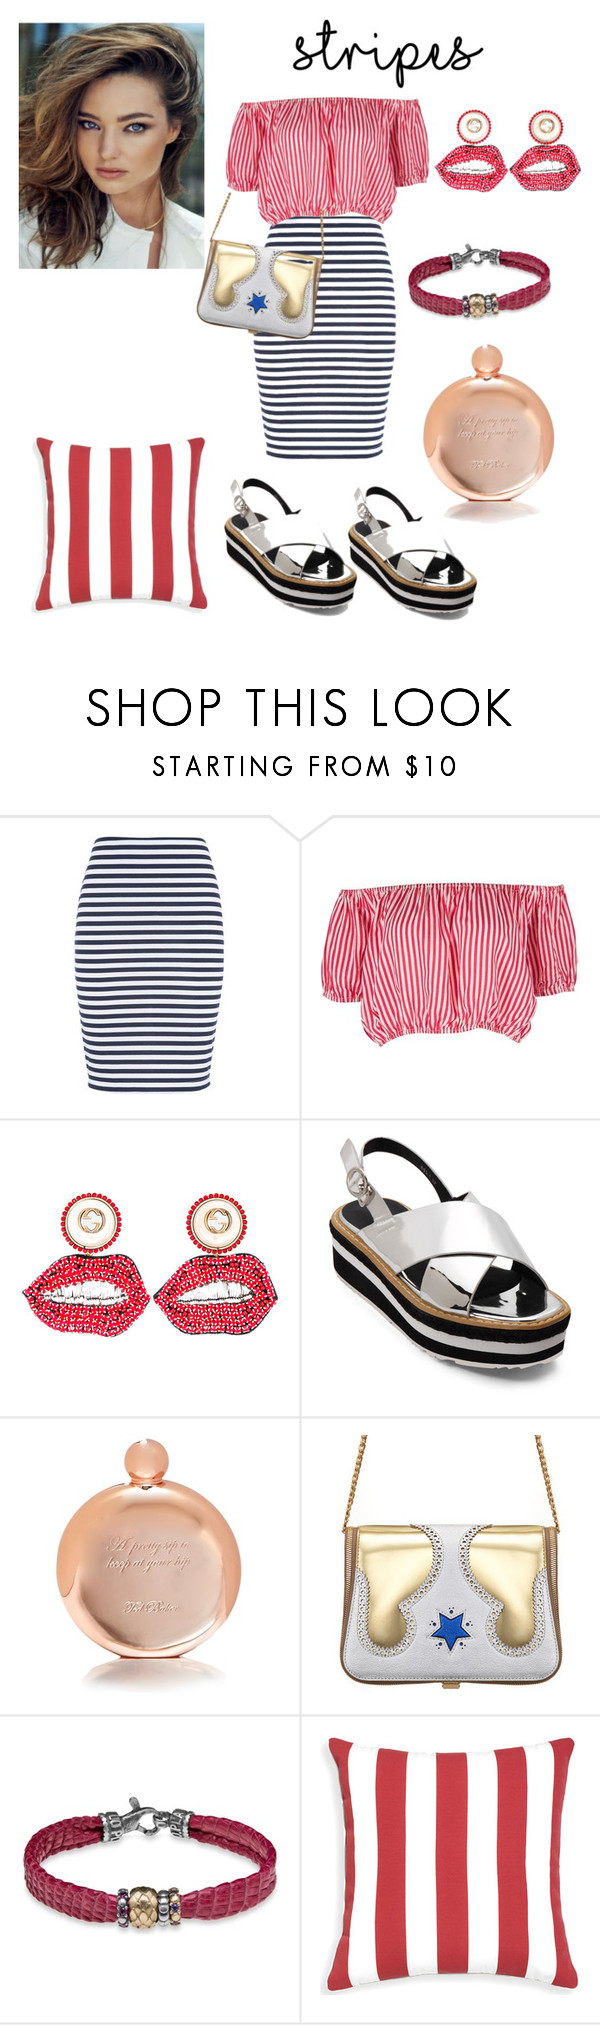 """""""stripes"""" by prettycarole ❤ liked on Polyvore featuring maurices, Gucci, Kerr®, Ted Baker, The Volon and Platadepalo"""